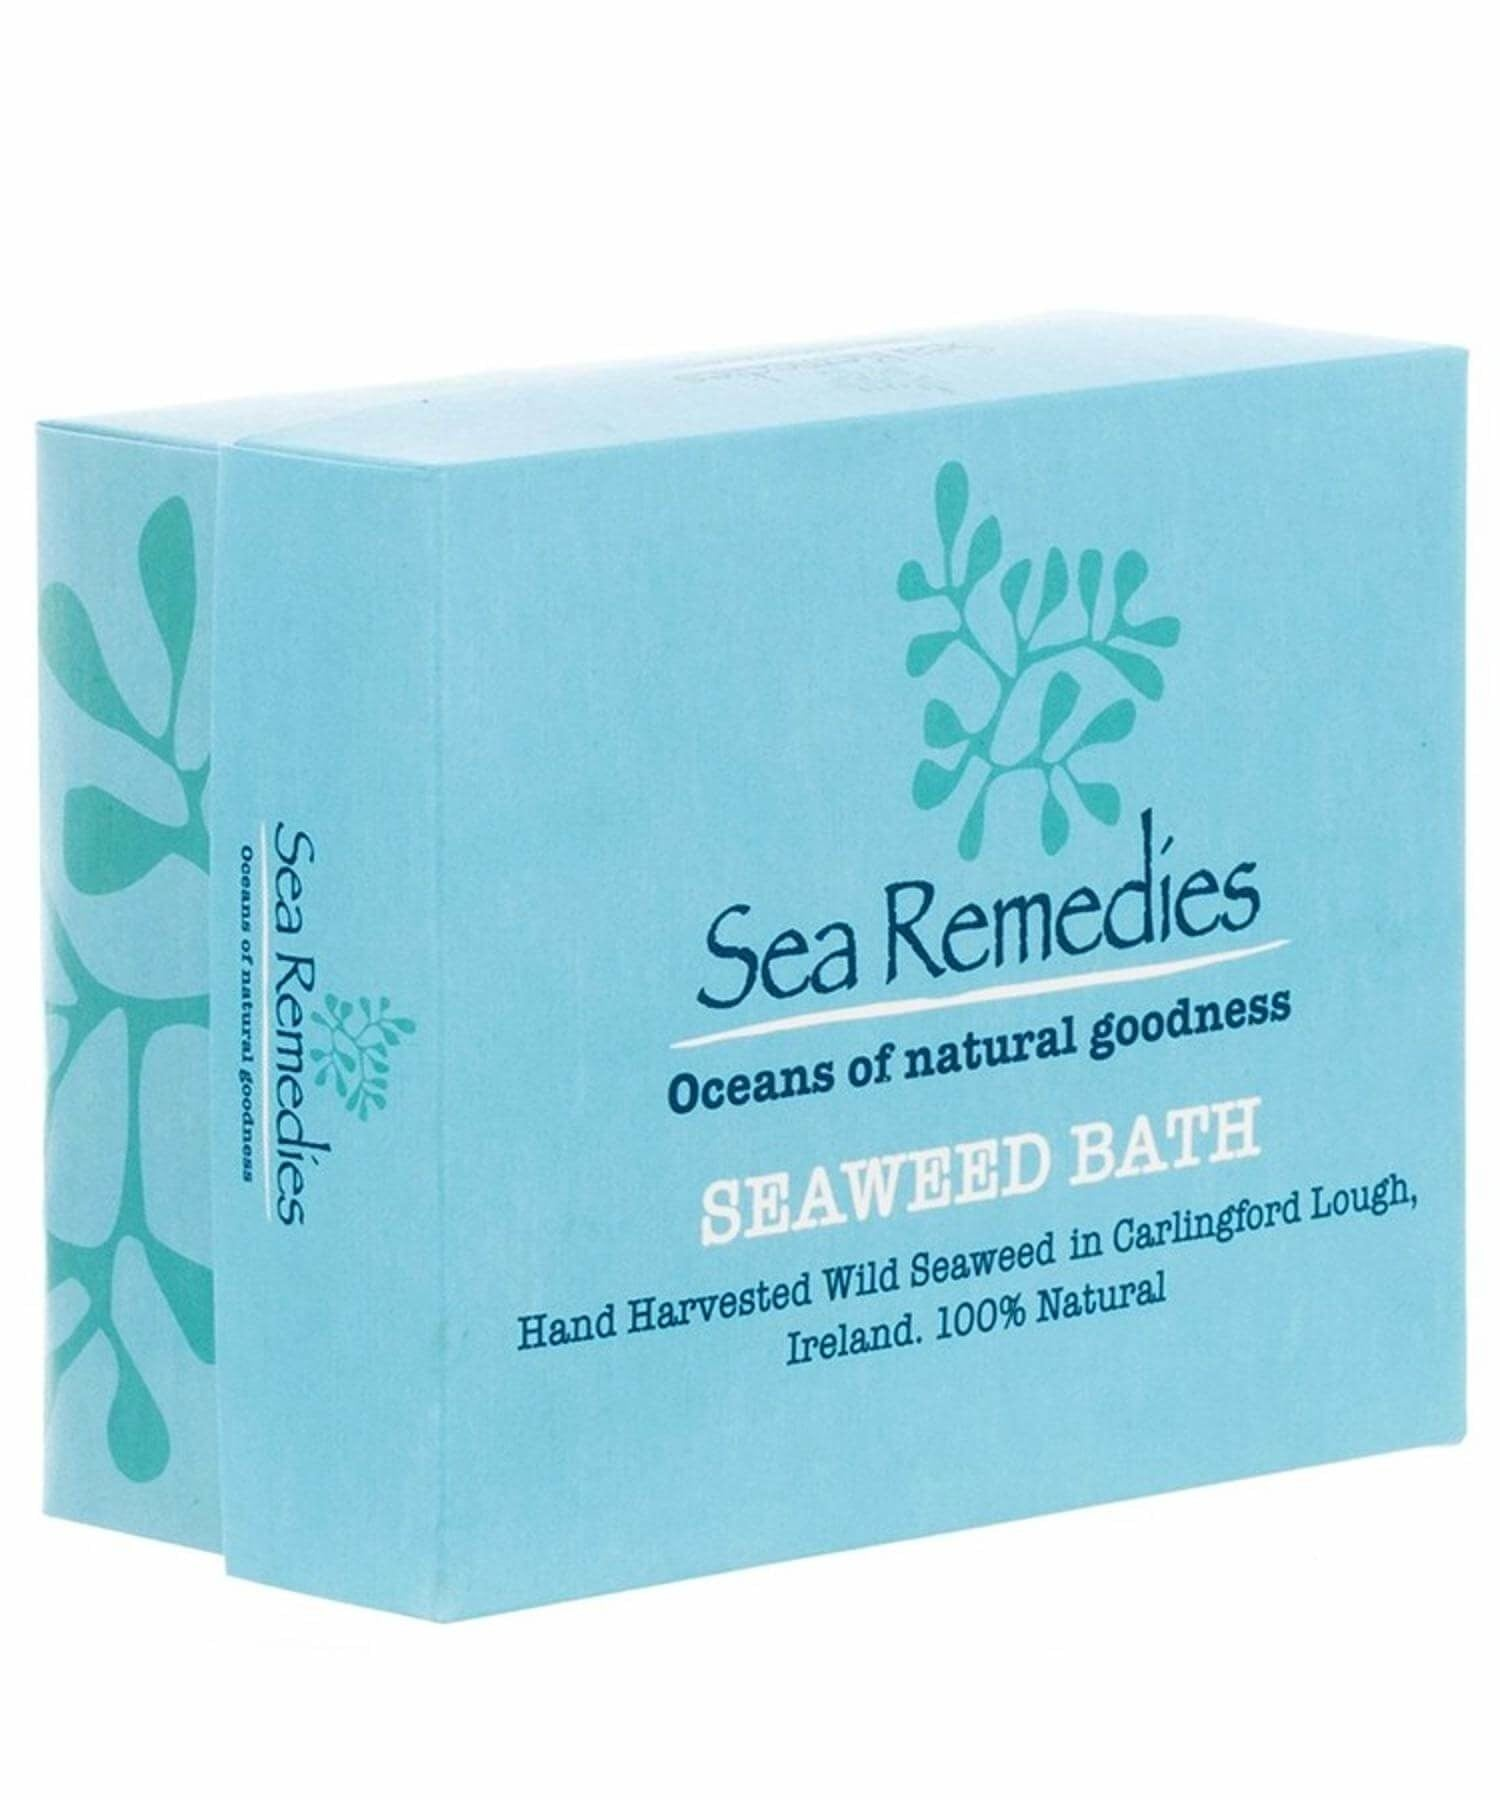 Seaweed Bath - [Sea Remedies] - Skincare & Beauty - Irish Gifts